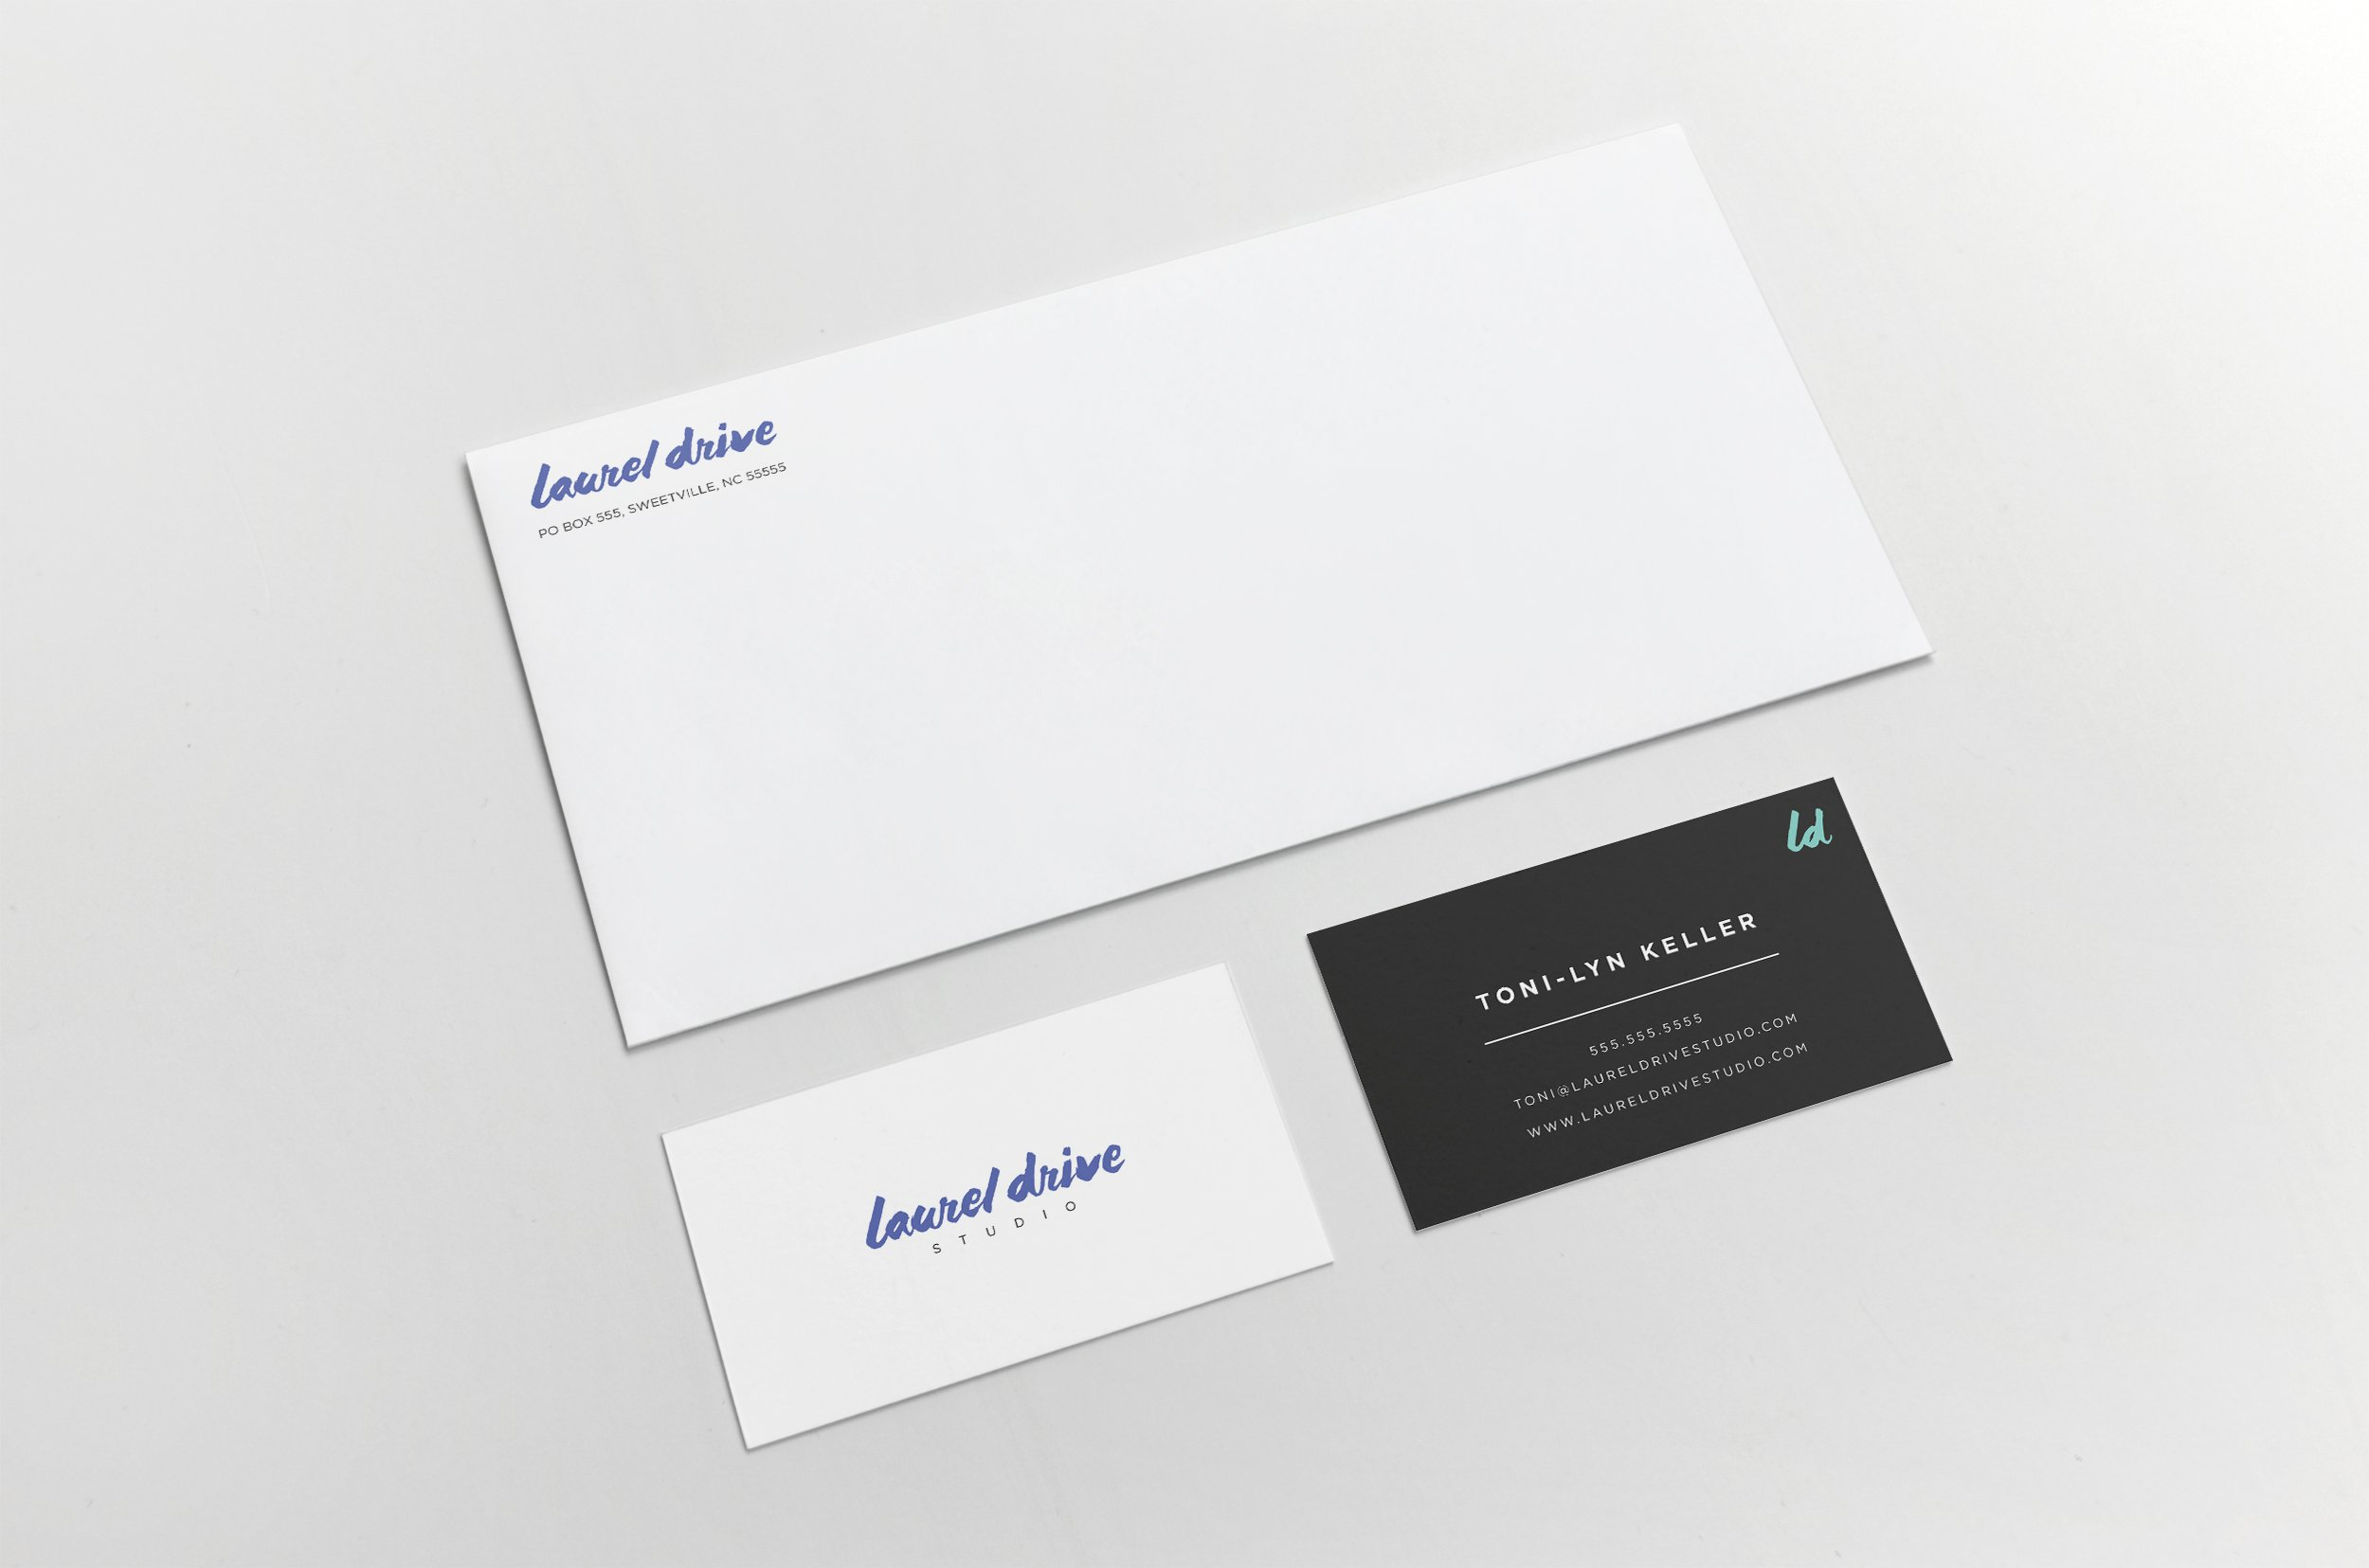 Laurel Drive Photography Studio Branding - 6